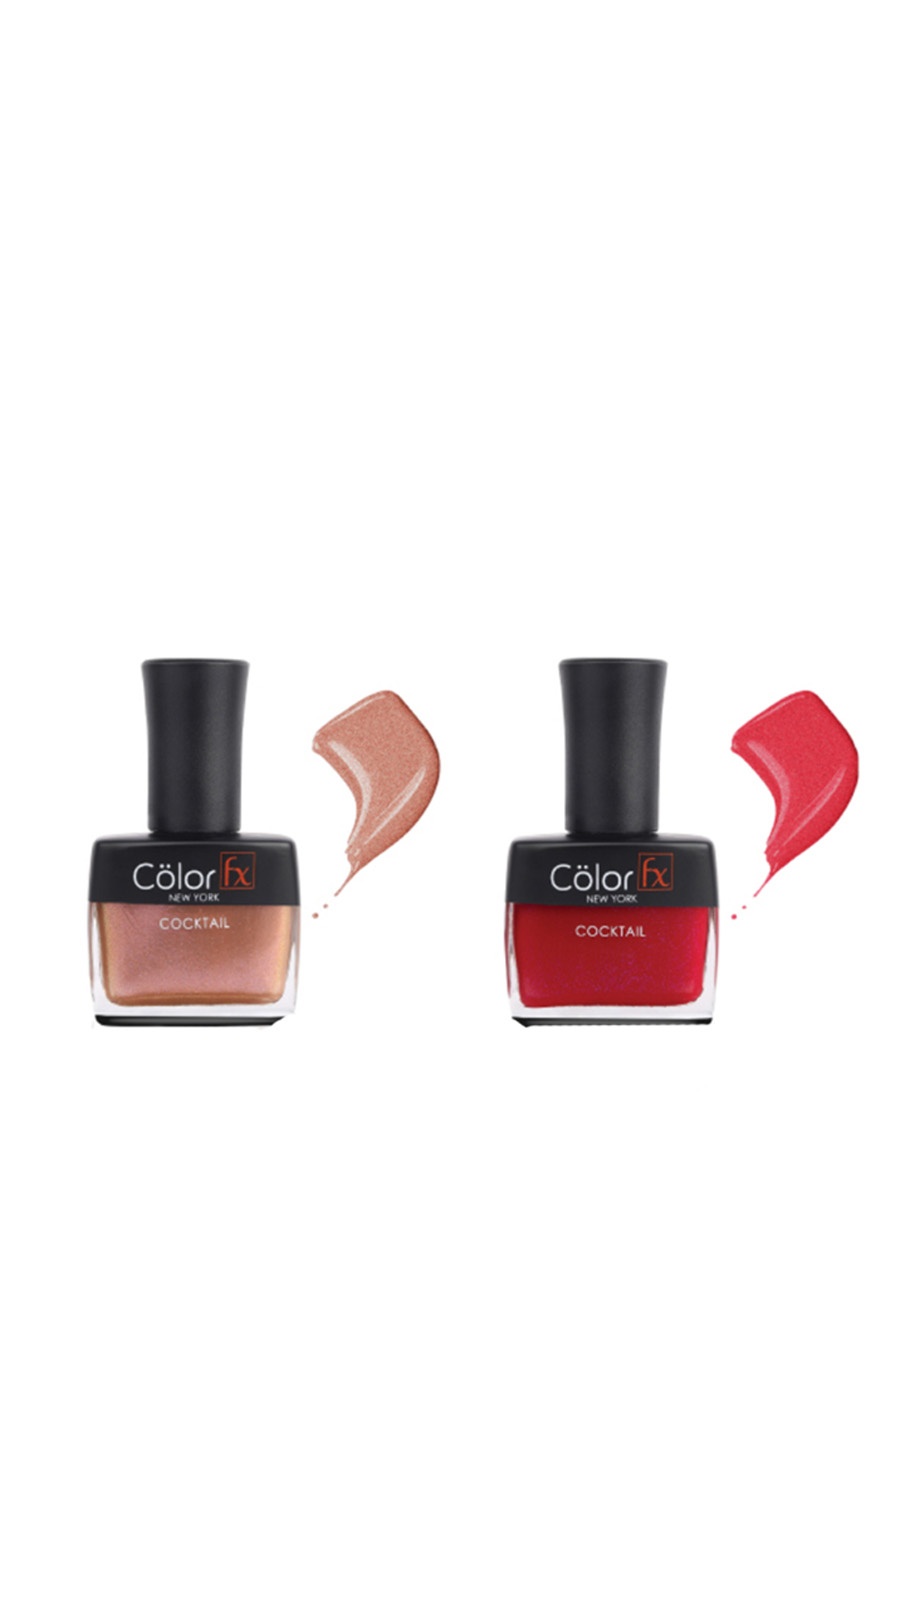 Color Fx | Color Fx Nail Enamel Cocktail - Party Collection Pack of 2